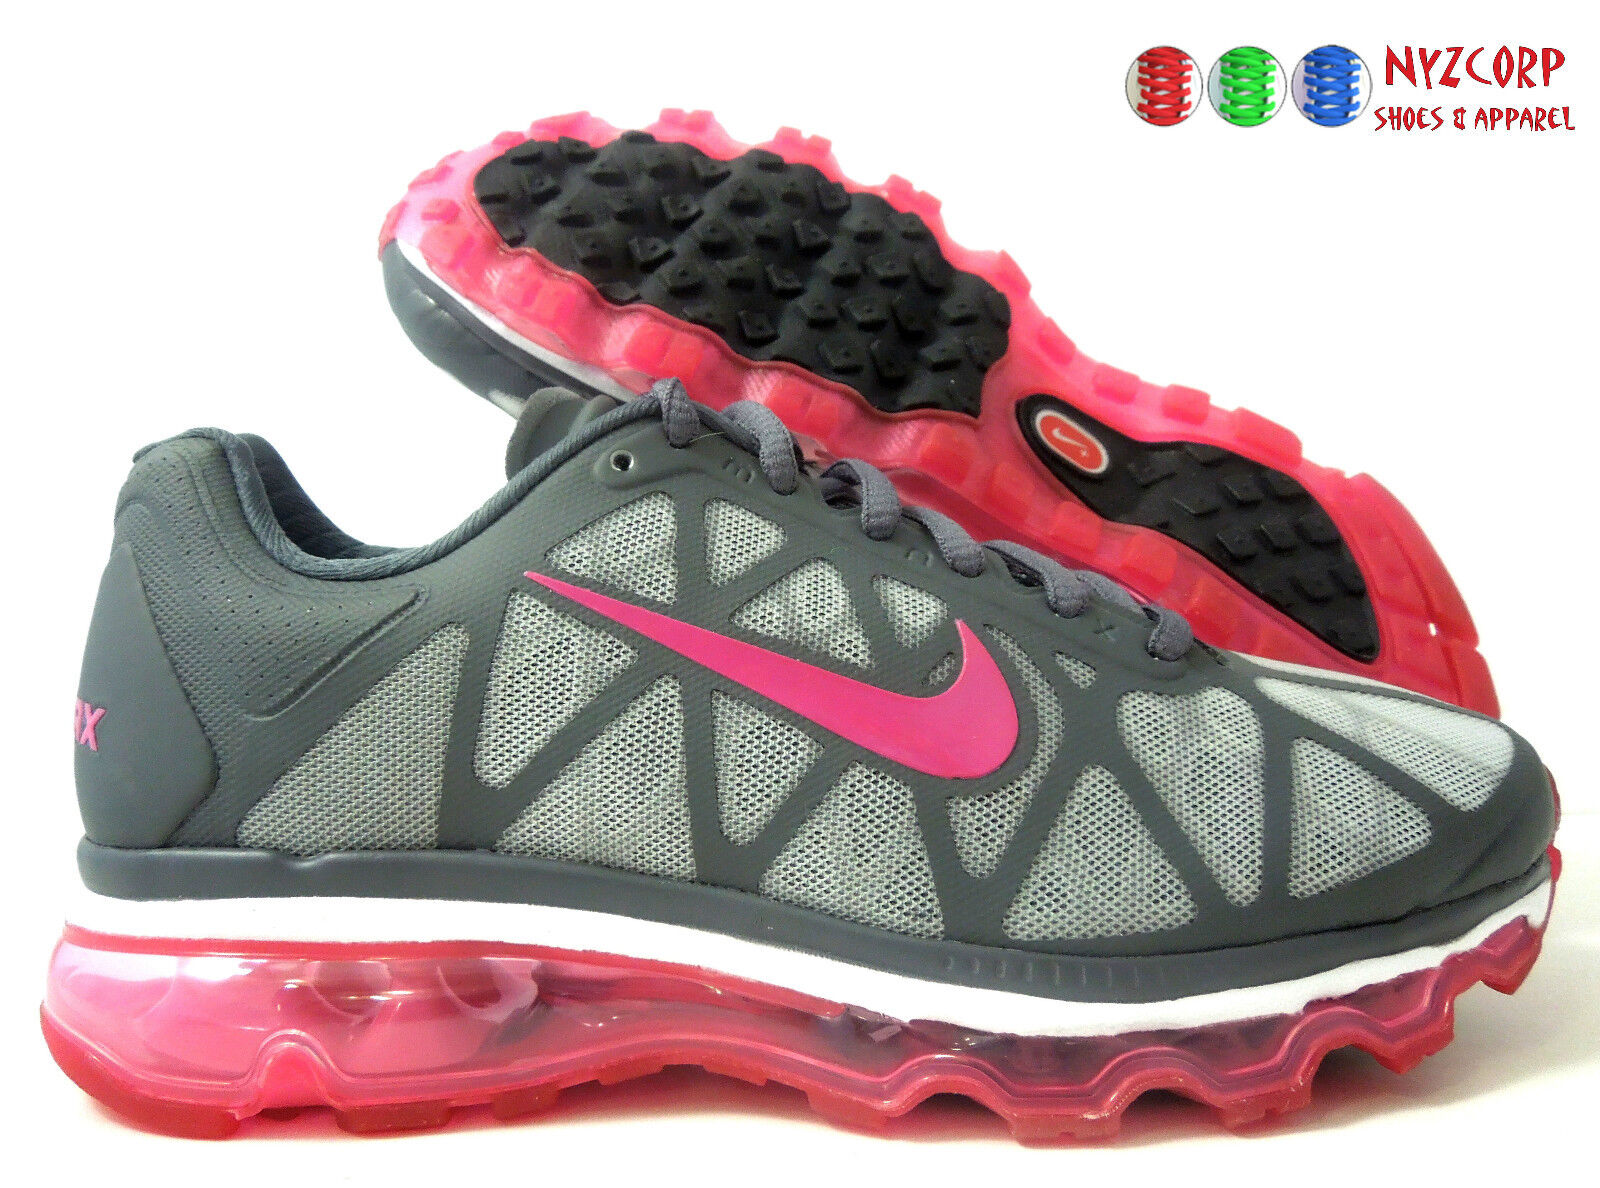 WMNS NIKE AIR MAX + 2018 iD CHARCOAL-WATERMELON PINK Price reduction Cheap women's shoes women's shoes